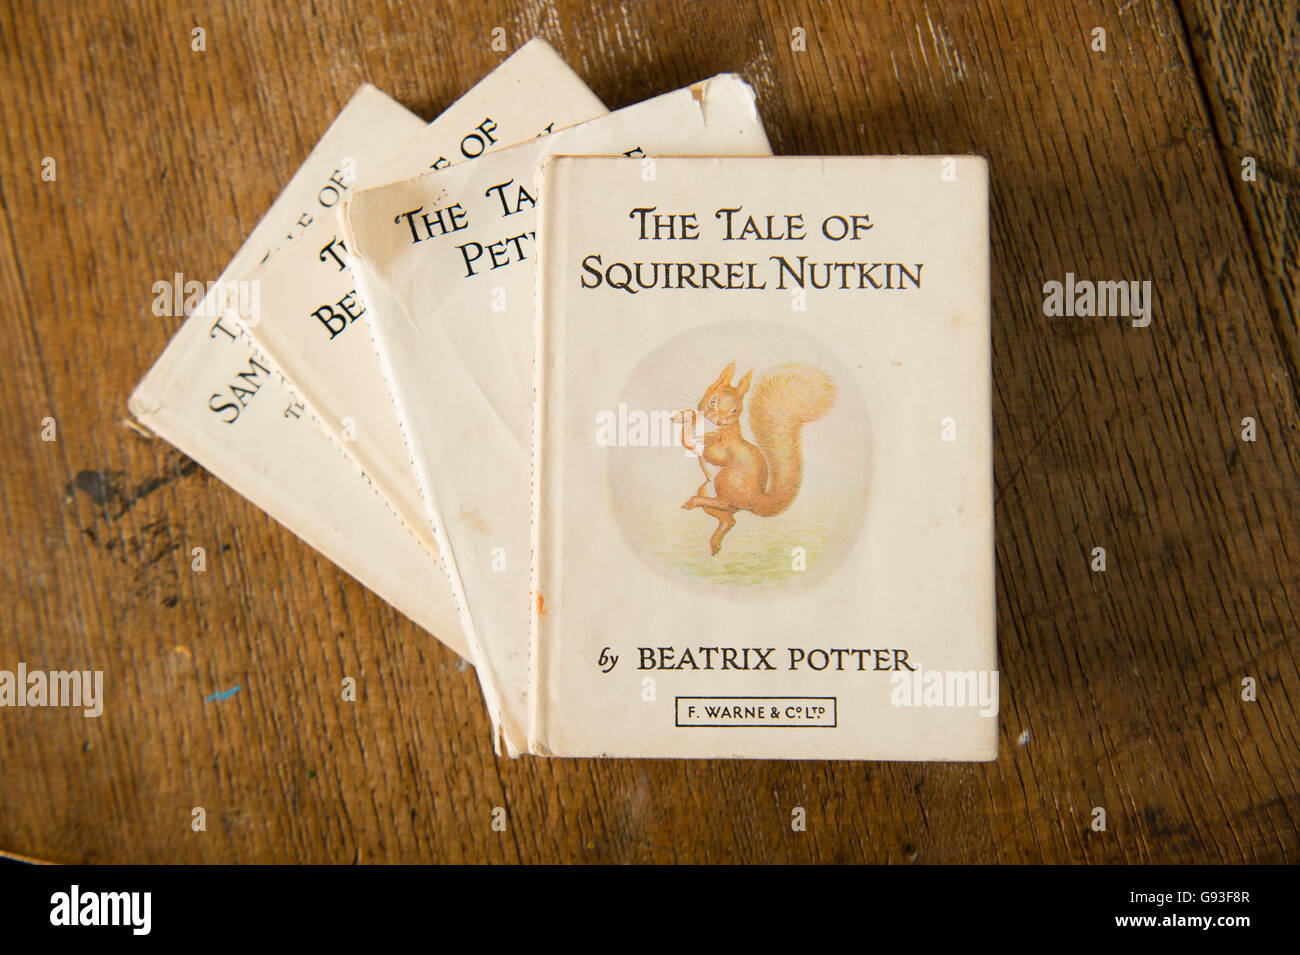 Classic English language children's literature: The Tale of Squirrel Nutkin on top of a stack of other books - Stock Image